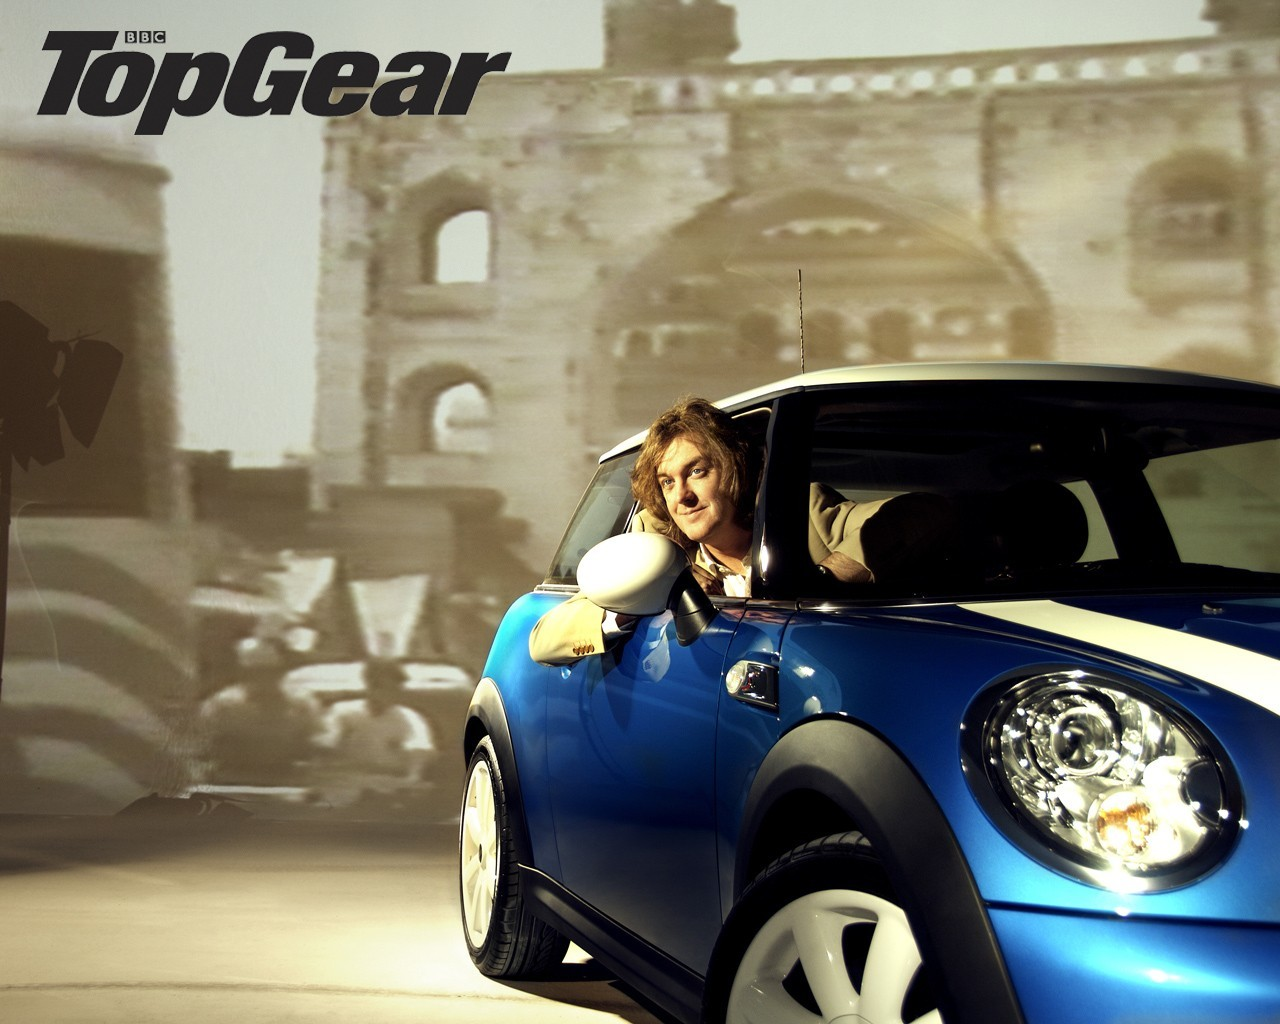 cars top gear BBC HD Wallpaper